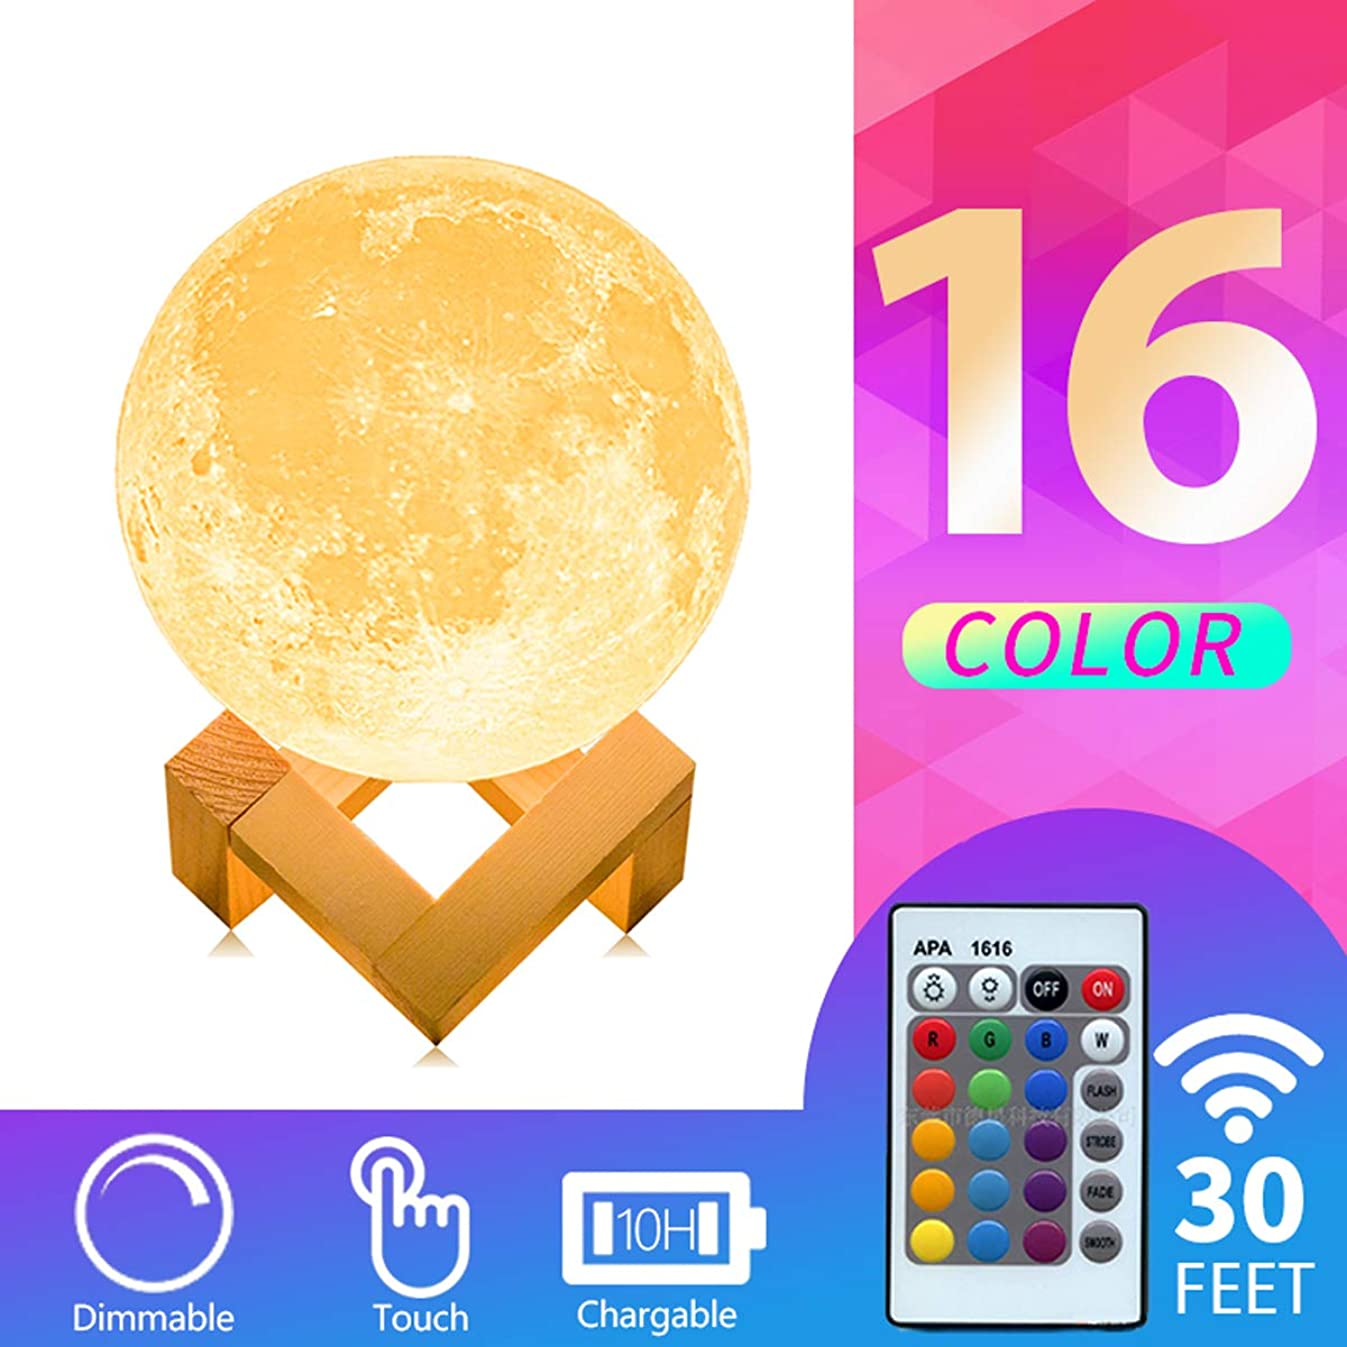 Mydethun Moon Lamp 16 Colors LED 3D Print Moon Light with Stand Remote Touch Control and USB Rechargeable Night Lights Gift for Women Baby Kids Lover Birthday Party (φ 3.9 Inch with Wood Base)